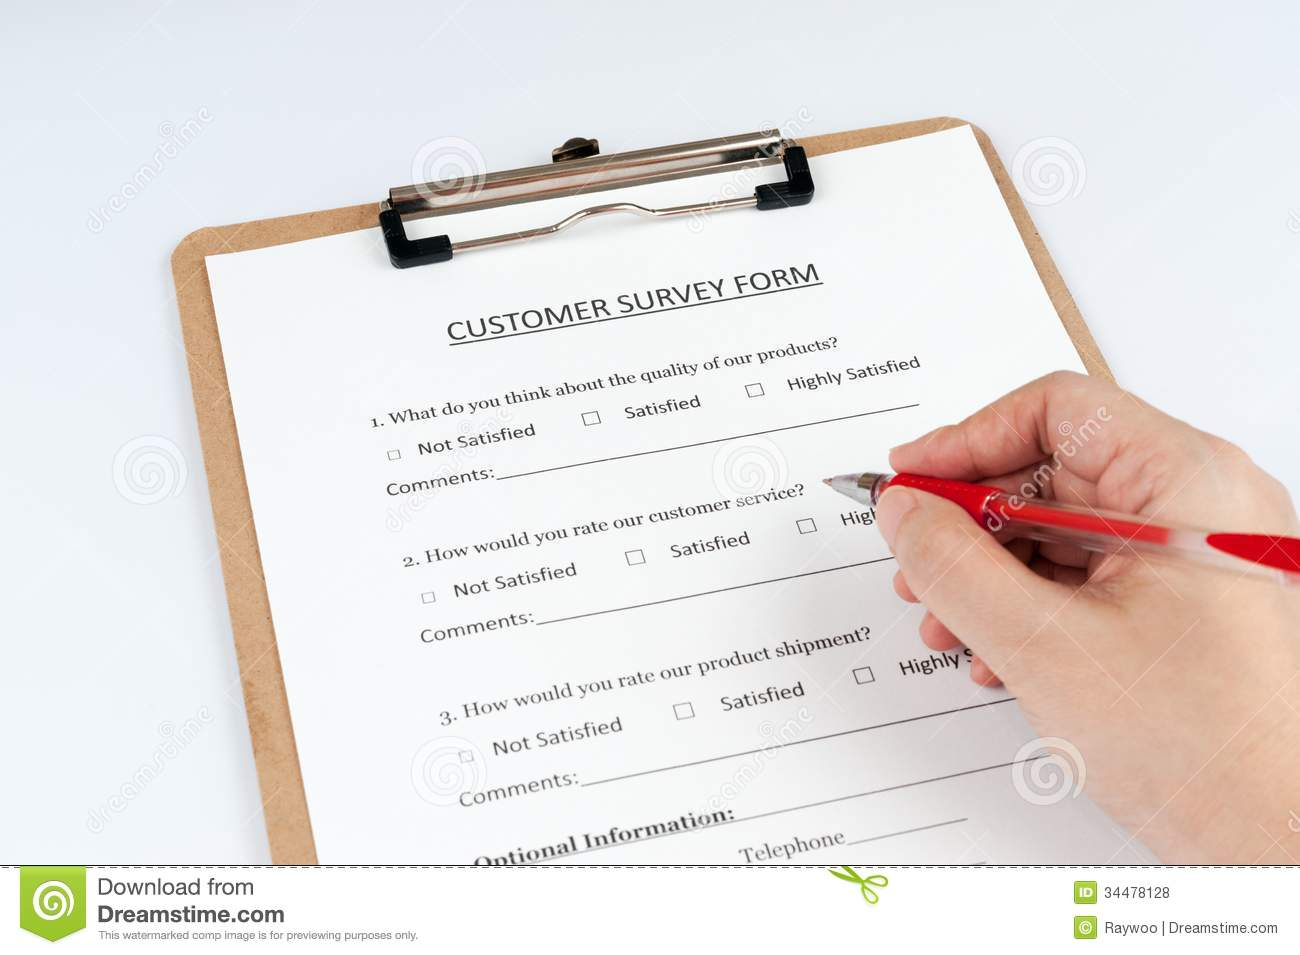 Customer Survey Form Royalty Free Stock Photos - Image: 34478128